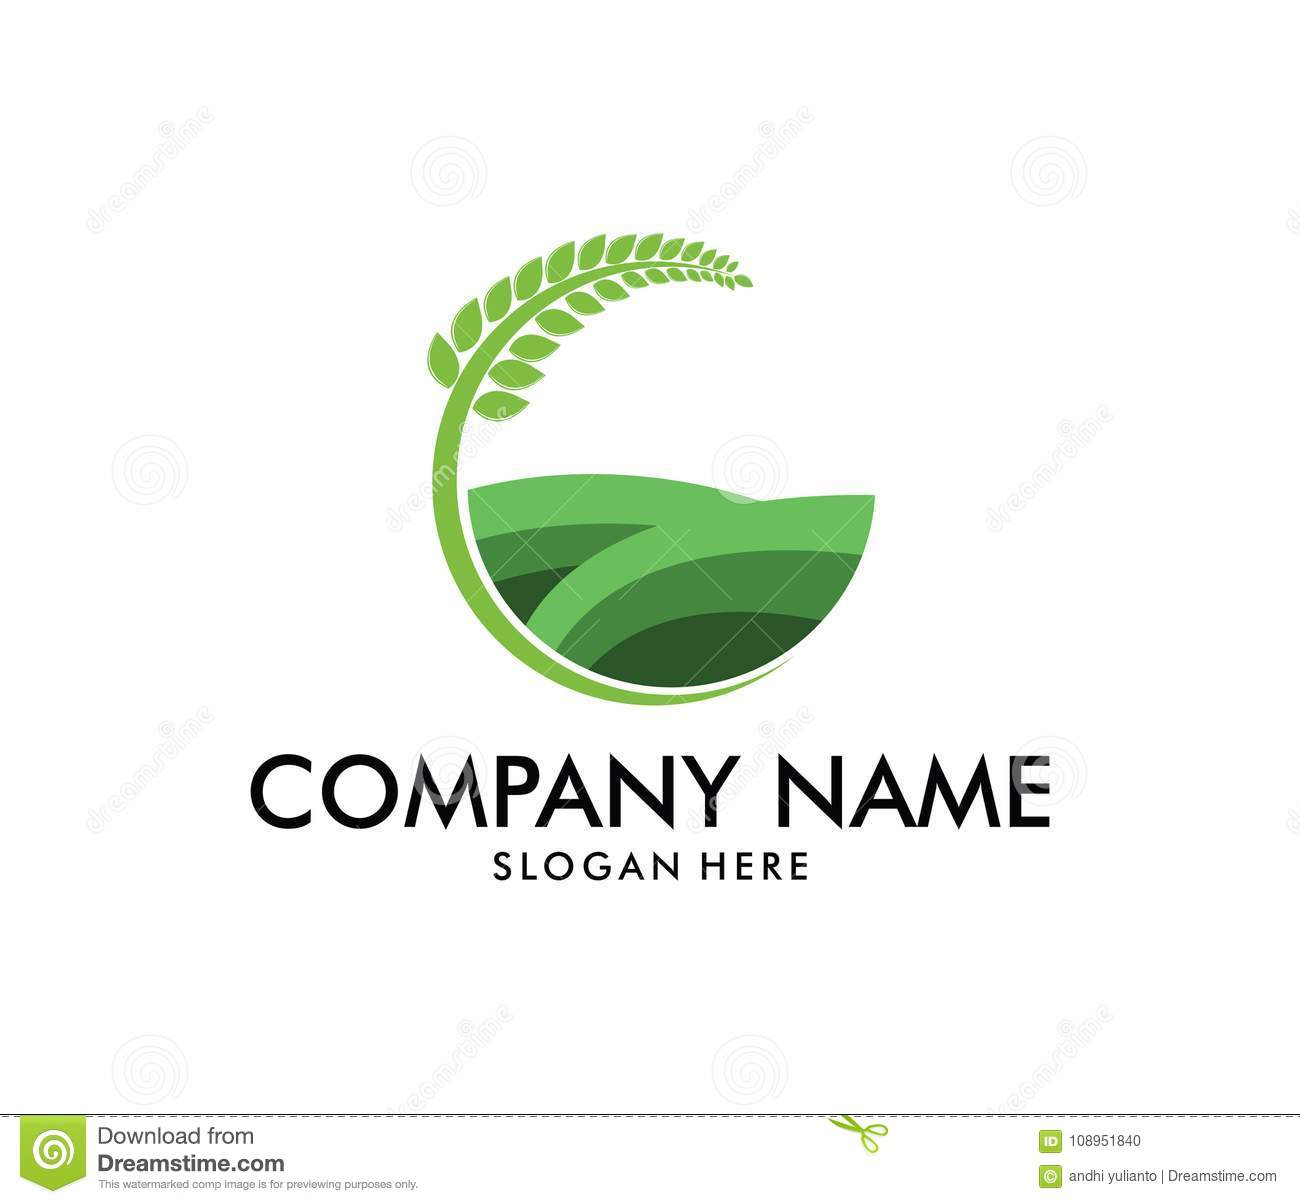 Vector logo design for agriculture, agronomy, wheat farm, rural country farming field, natural harvest